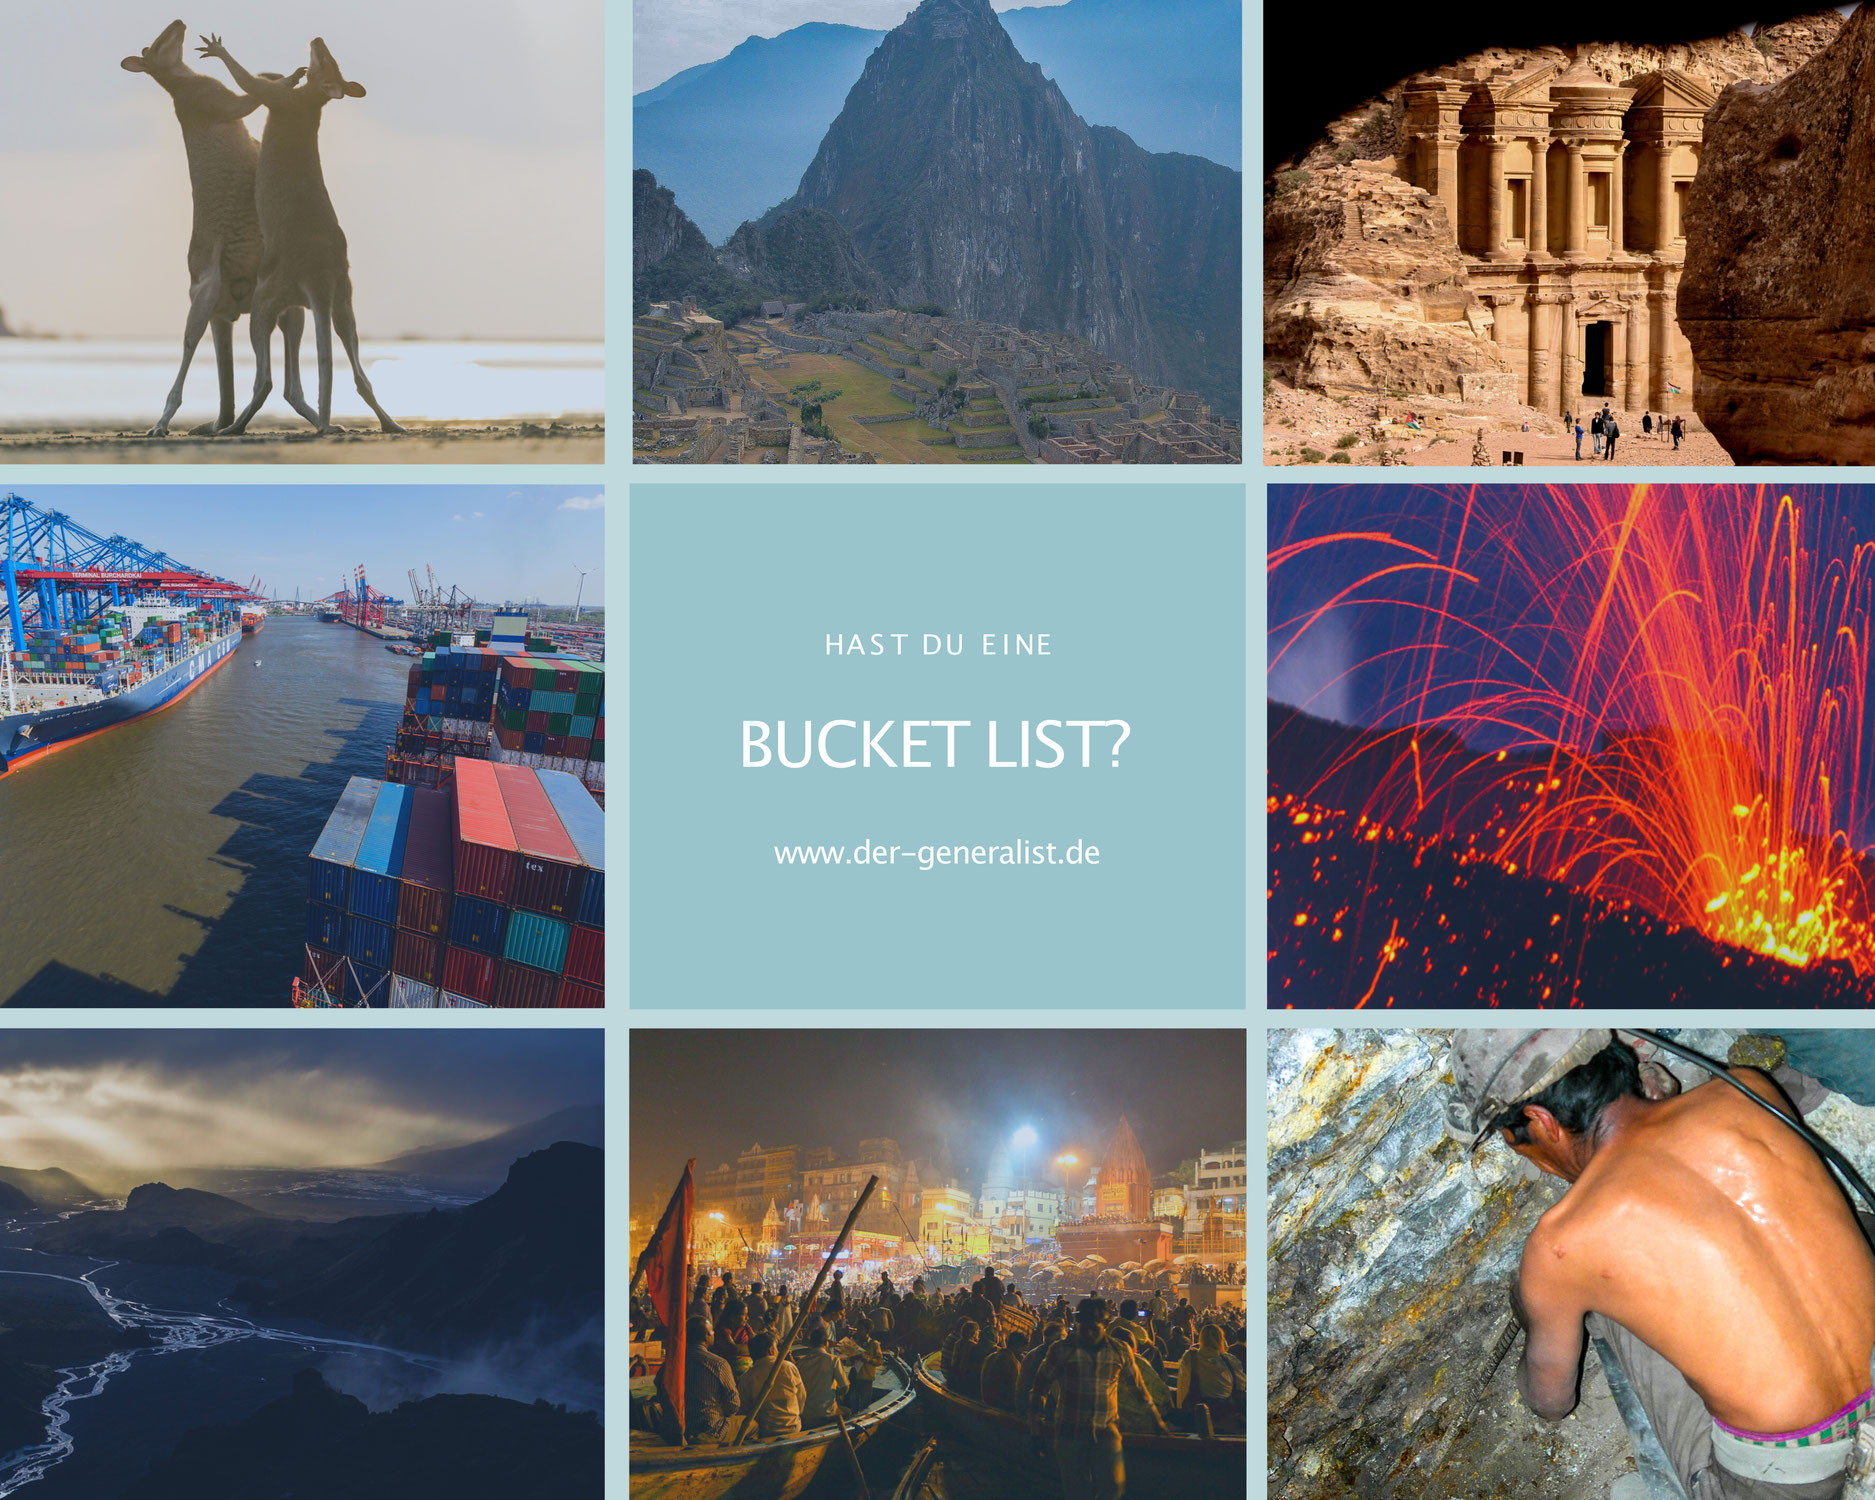 Hast du eine bucket list?